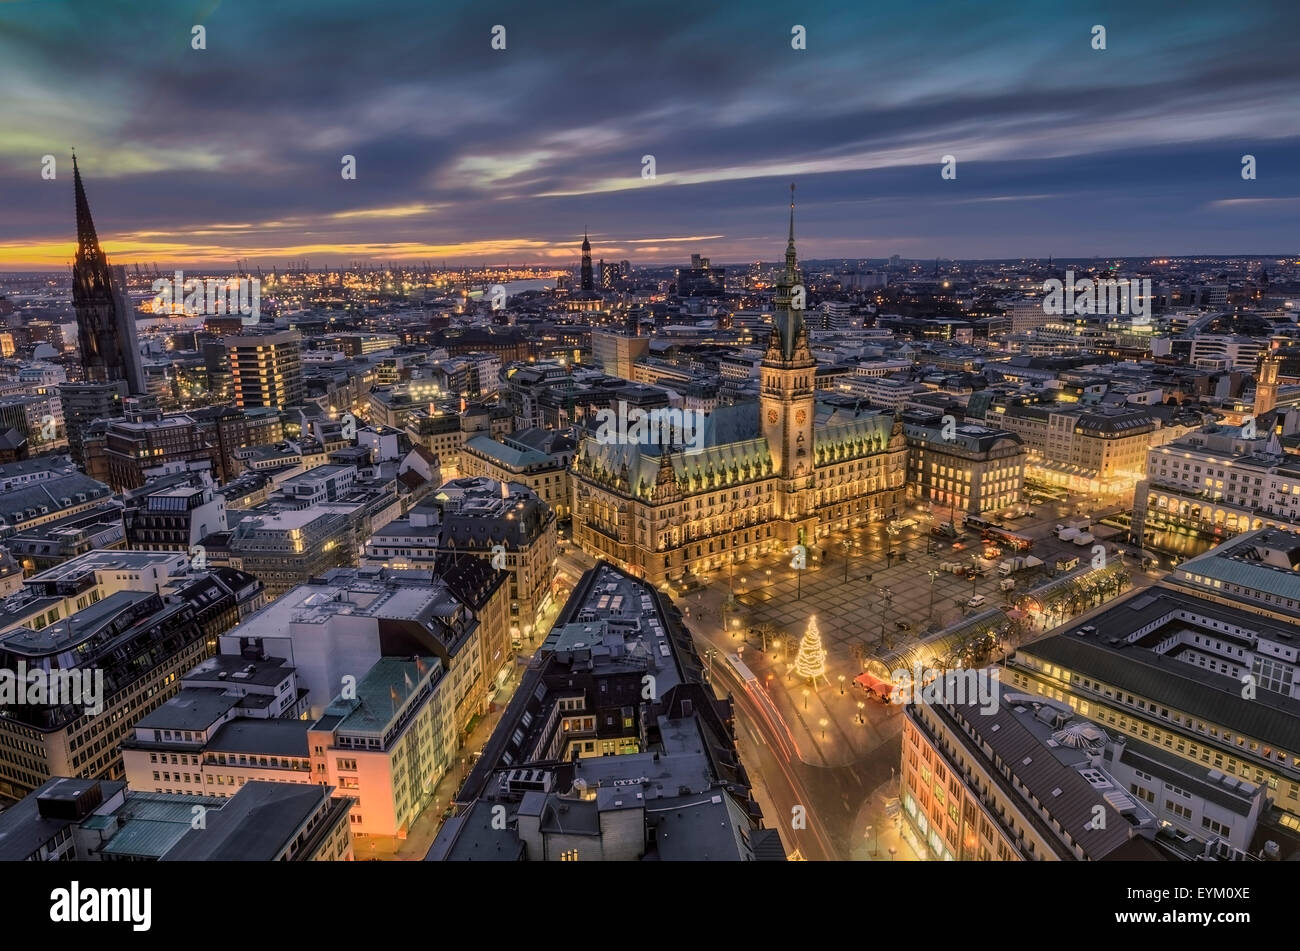 germany hamburg neustadt rathausmarkt city hall night night stock photo royalty free. Black Bedroom Furniture Sets. Home Design Ideas